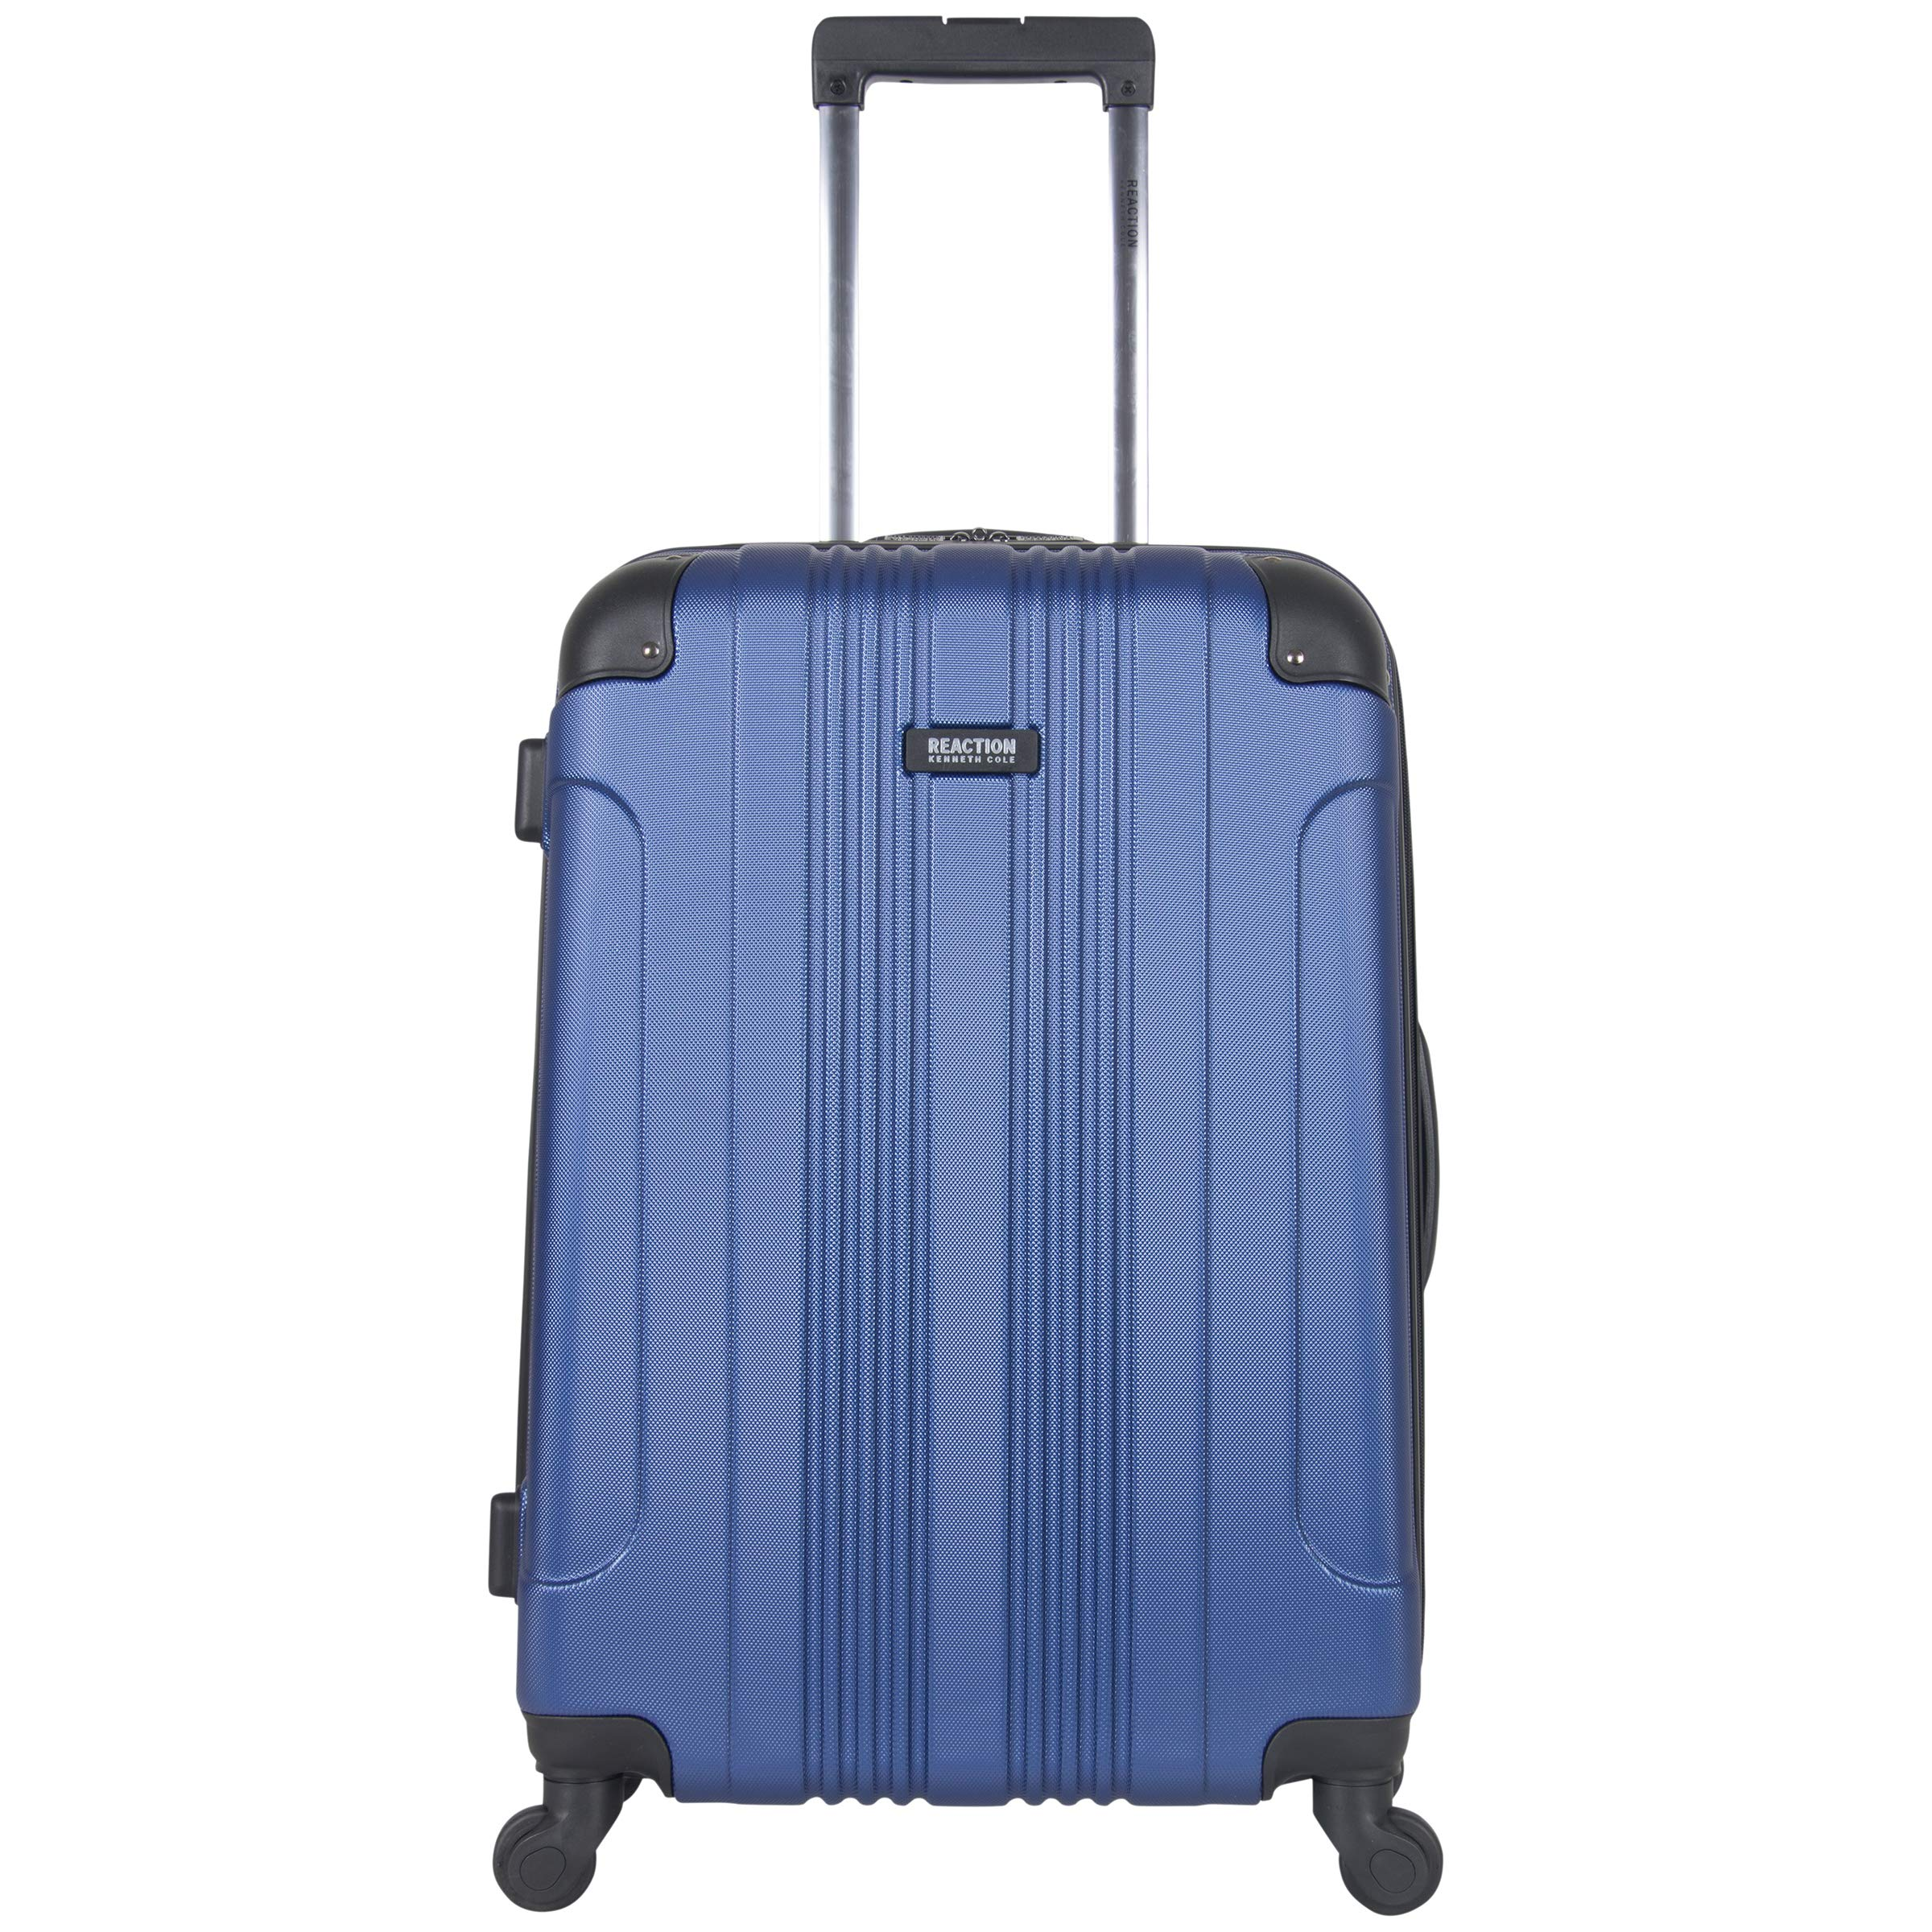 Kenneth Cole Reaction Out Of Bounds 24-Inch Check-Size Lightweight Durable Hardshell 4-Wheel Spinner Upright Luggage